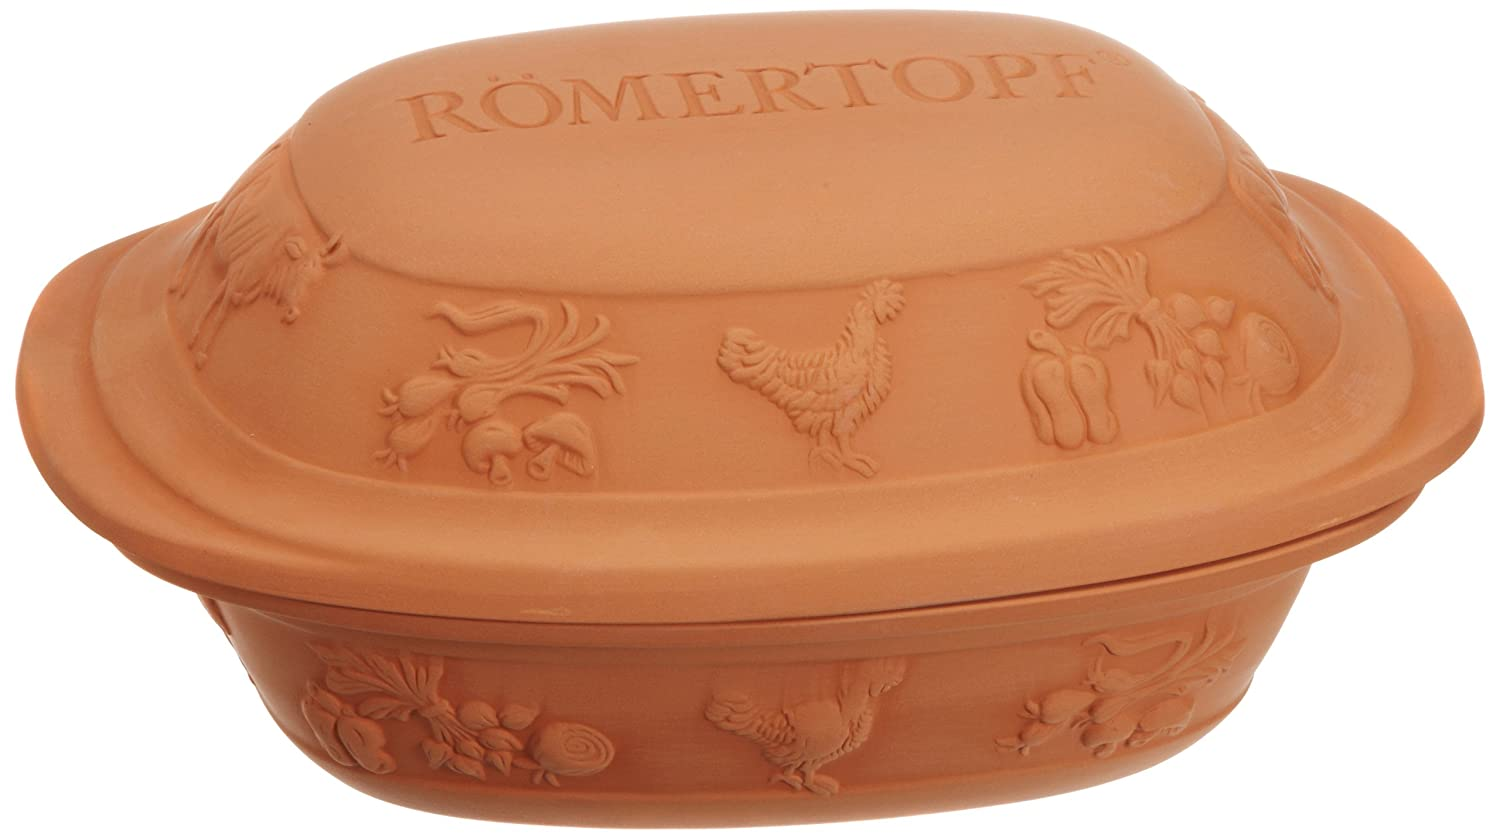 Römertopf 11905 Universal Casserole Rustico for 4 People